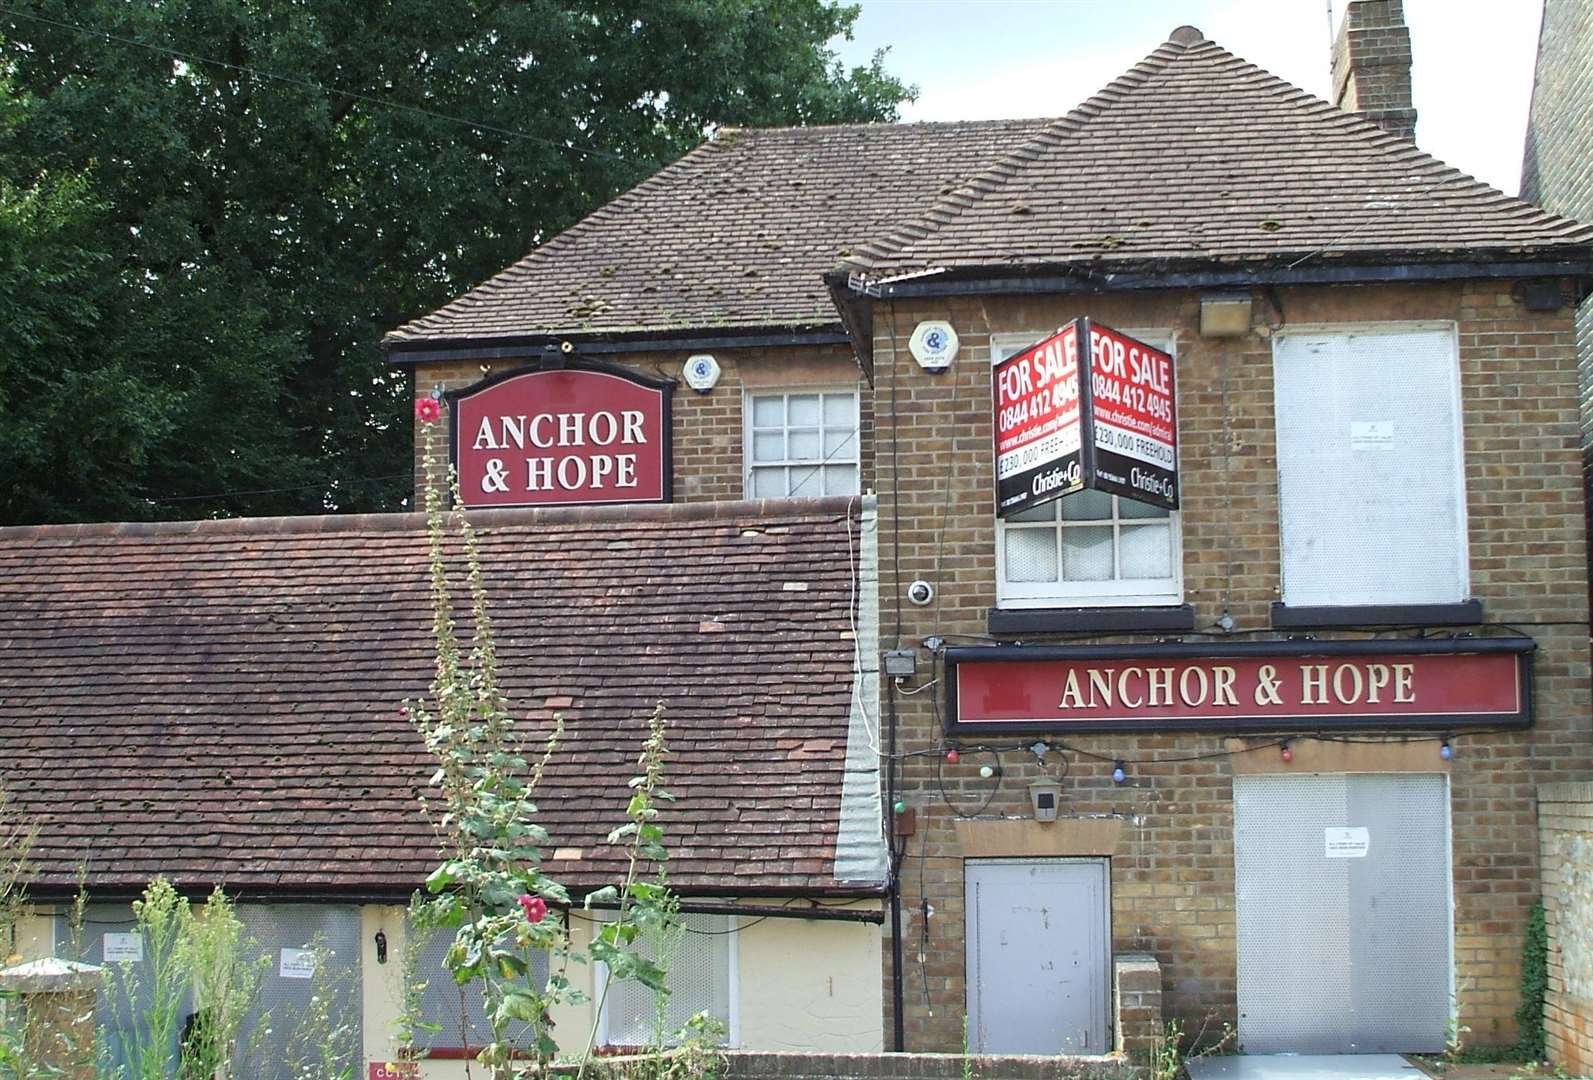 The Anchor and Hope in Maidstone shut its doors in 2010